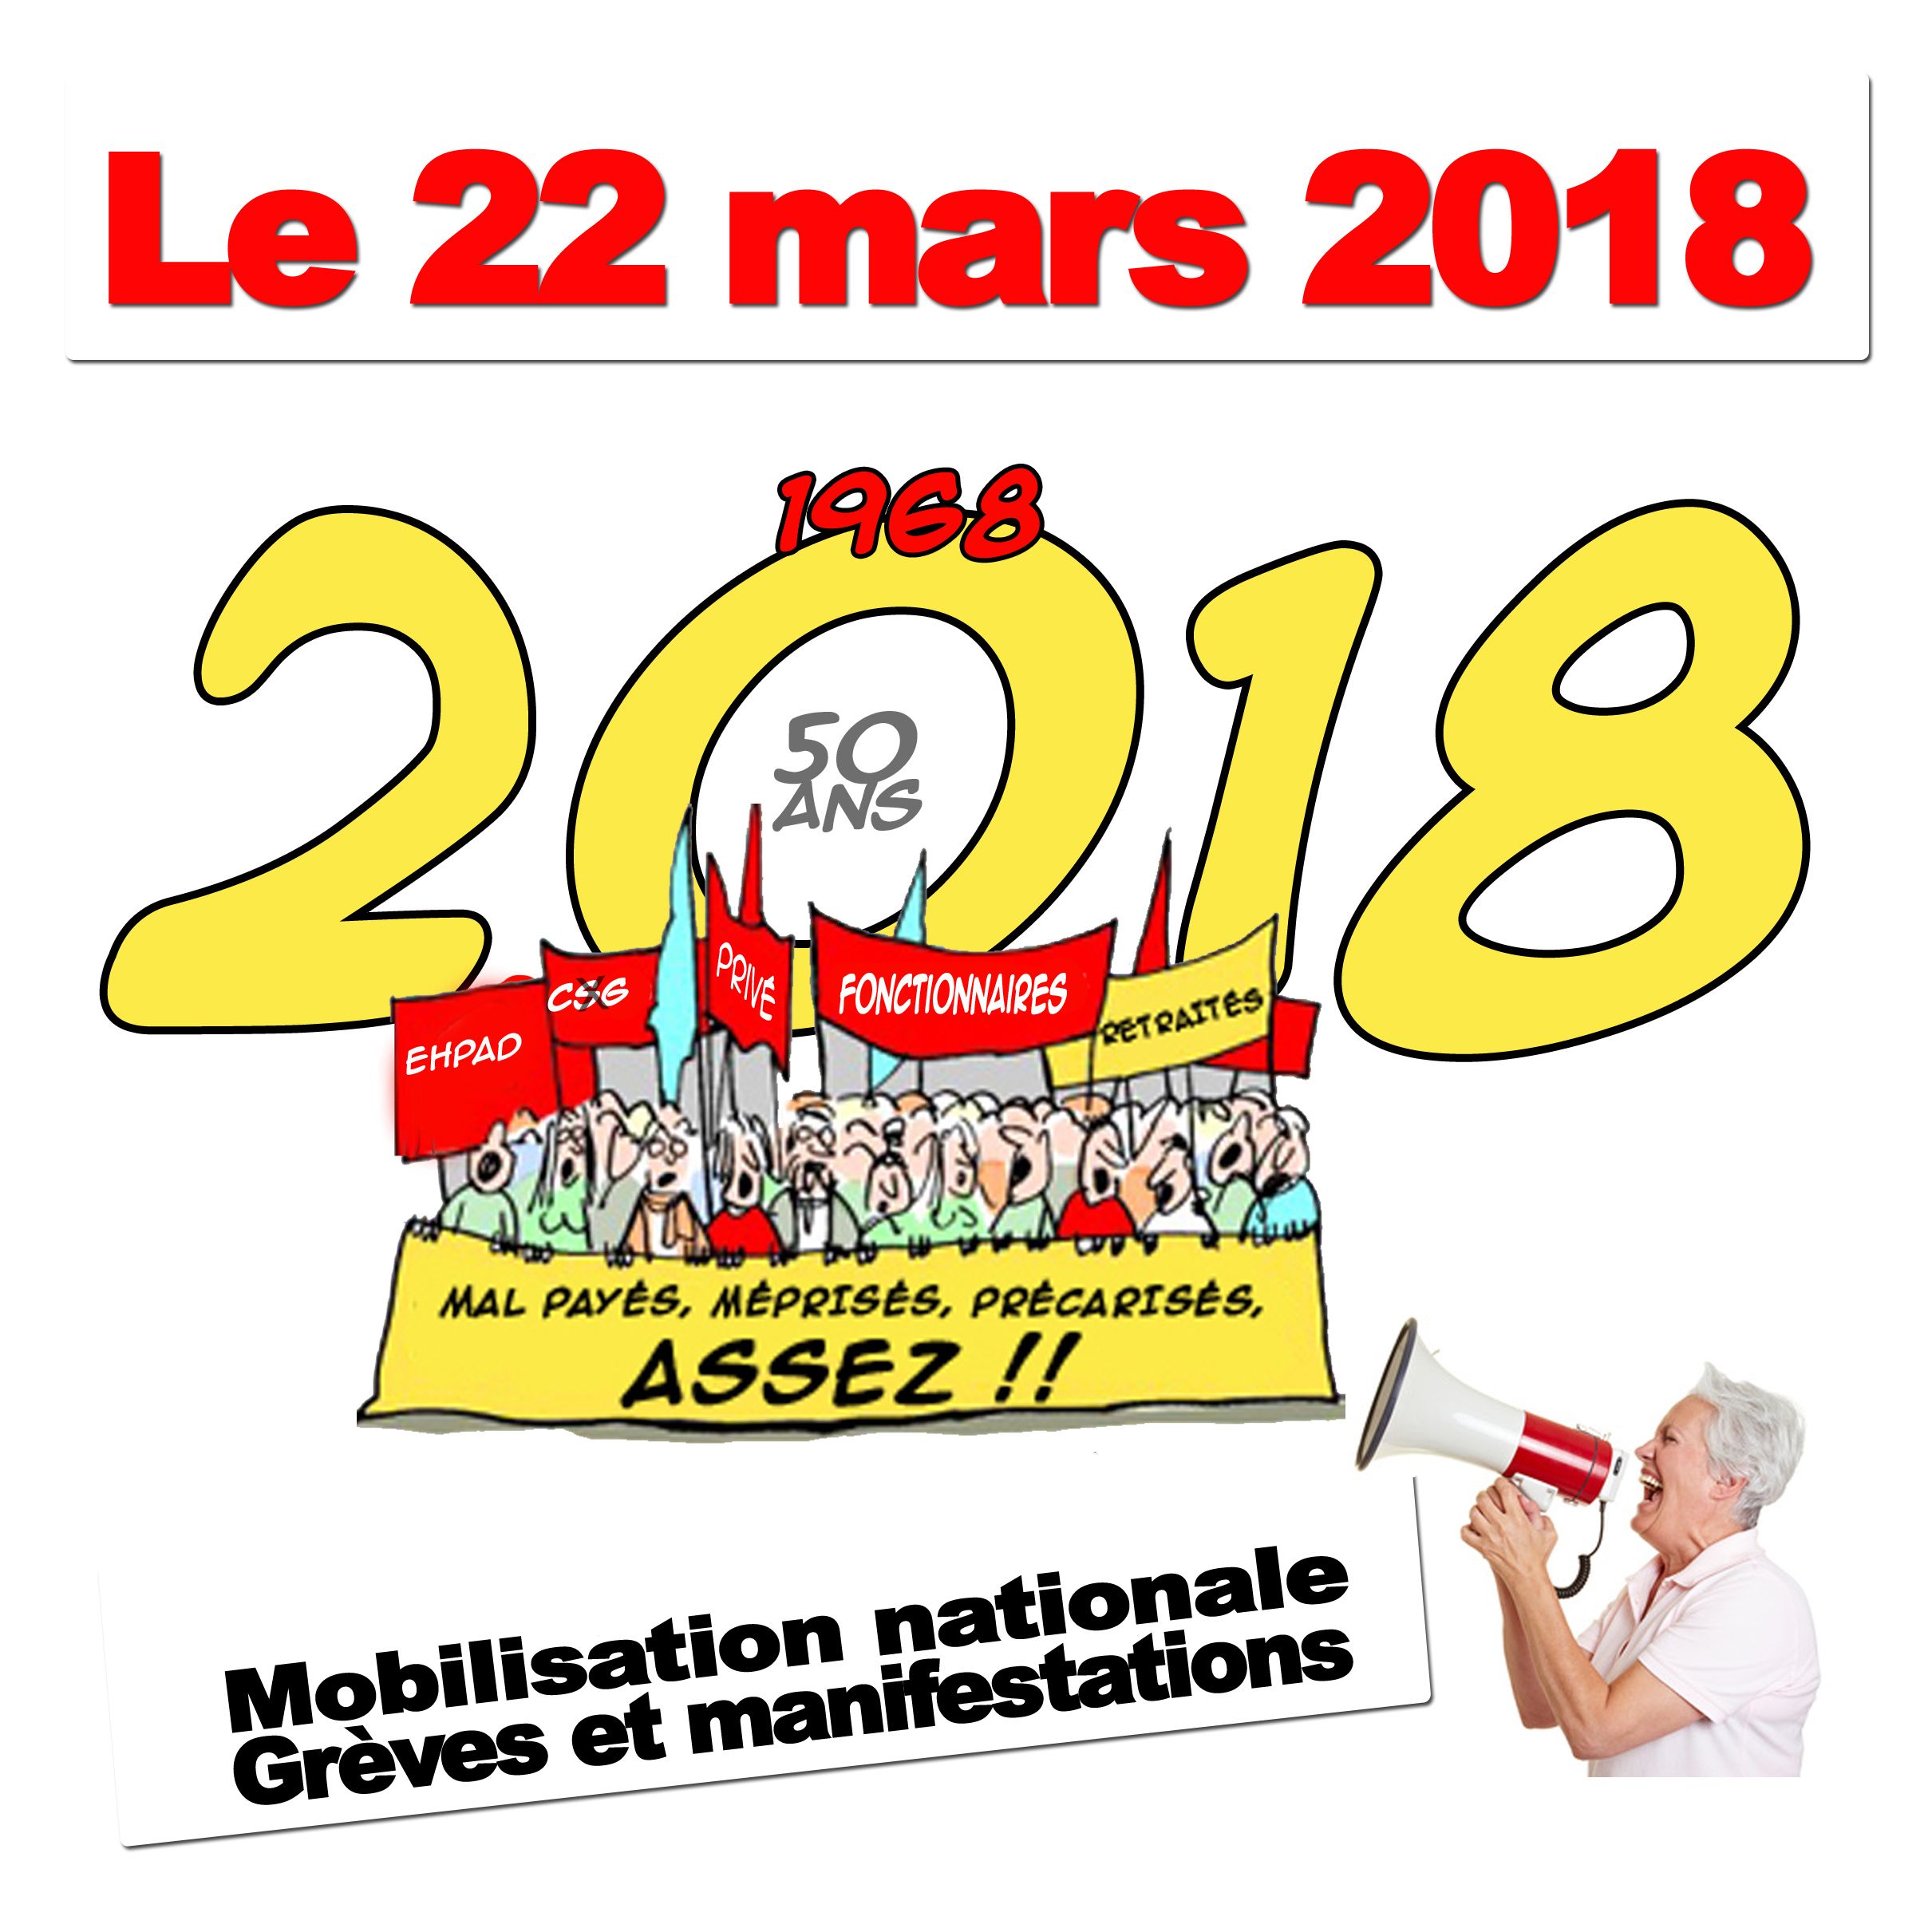 Mobilisation nationale le 22 mars 2018